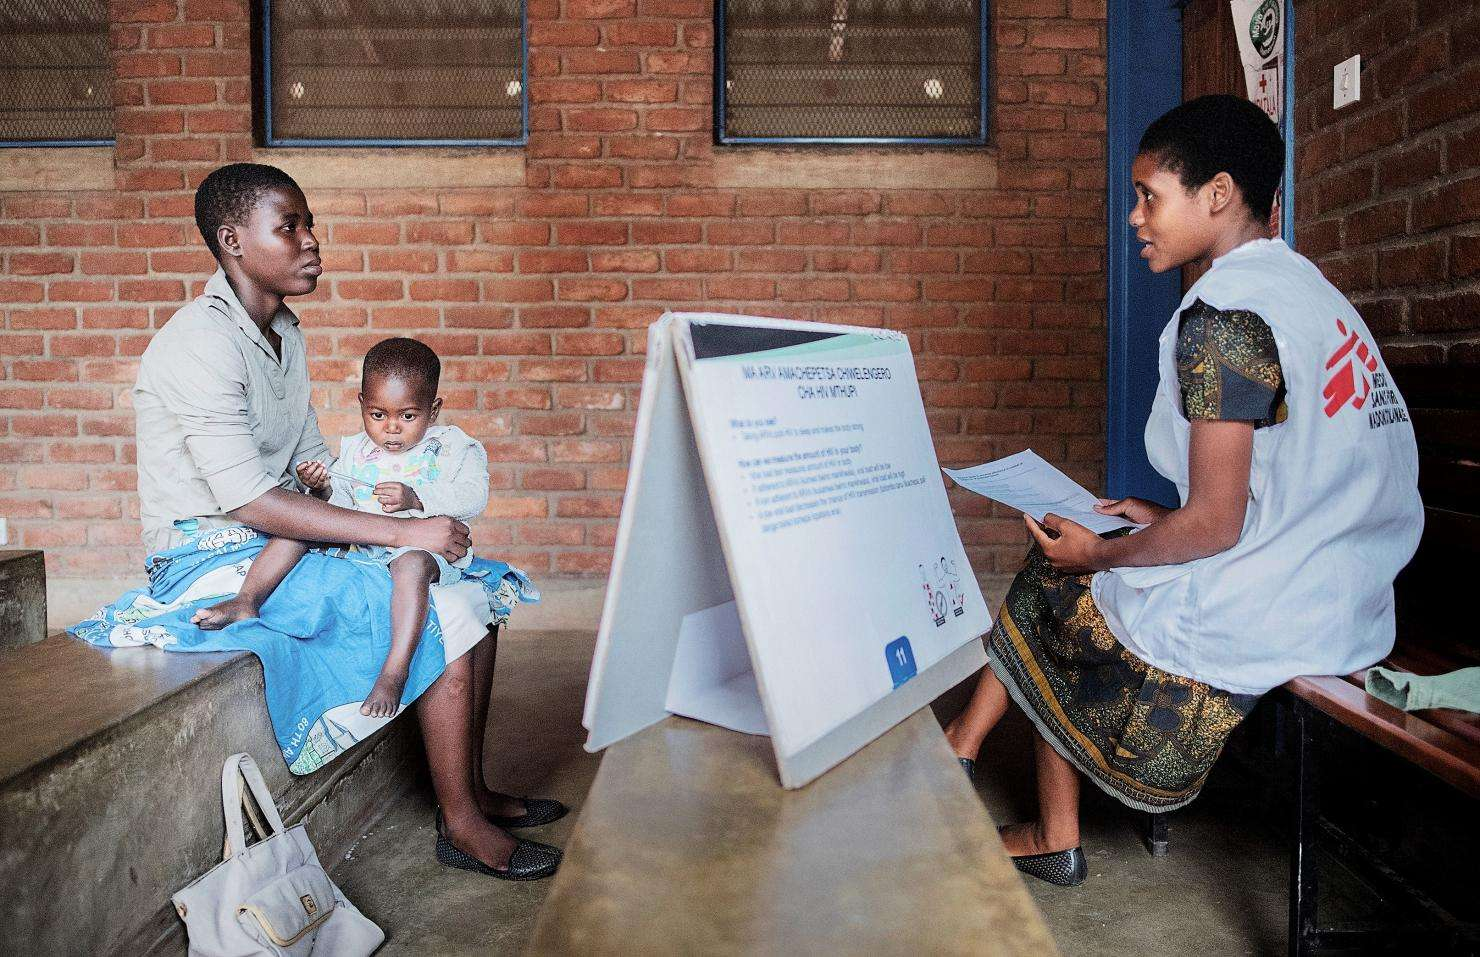 Mary Dyson (left) 23 years, from Nyambiro, sits in counseling room with her son, Harlod Dyson, 23 months old as she takes part in Enhanced Adherence Counseling (EAC) by MSF lay counselor Ruth Chumbu, 27 years in Sorgin Health Center, Nsanje health district.